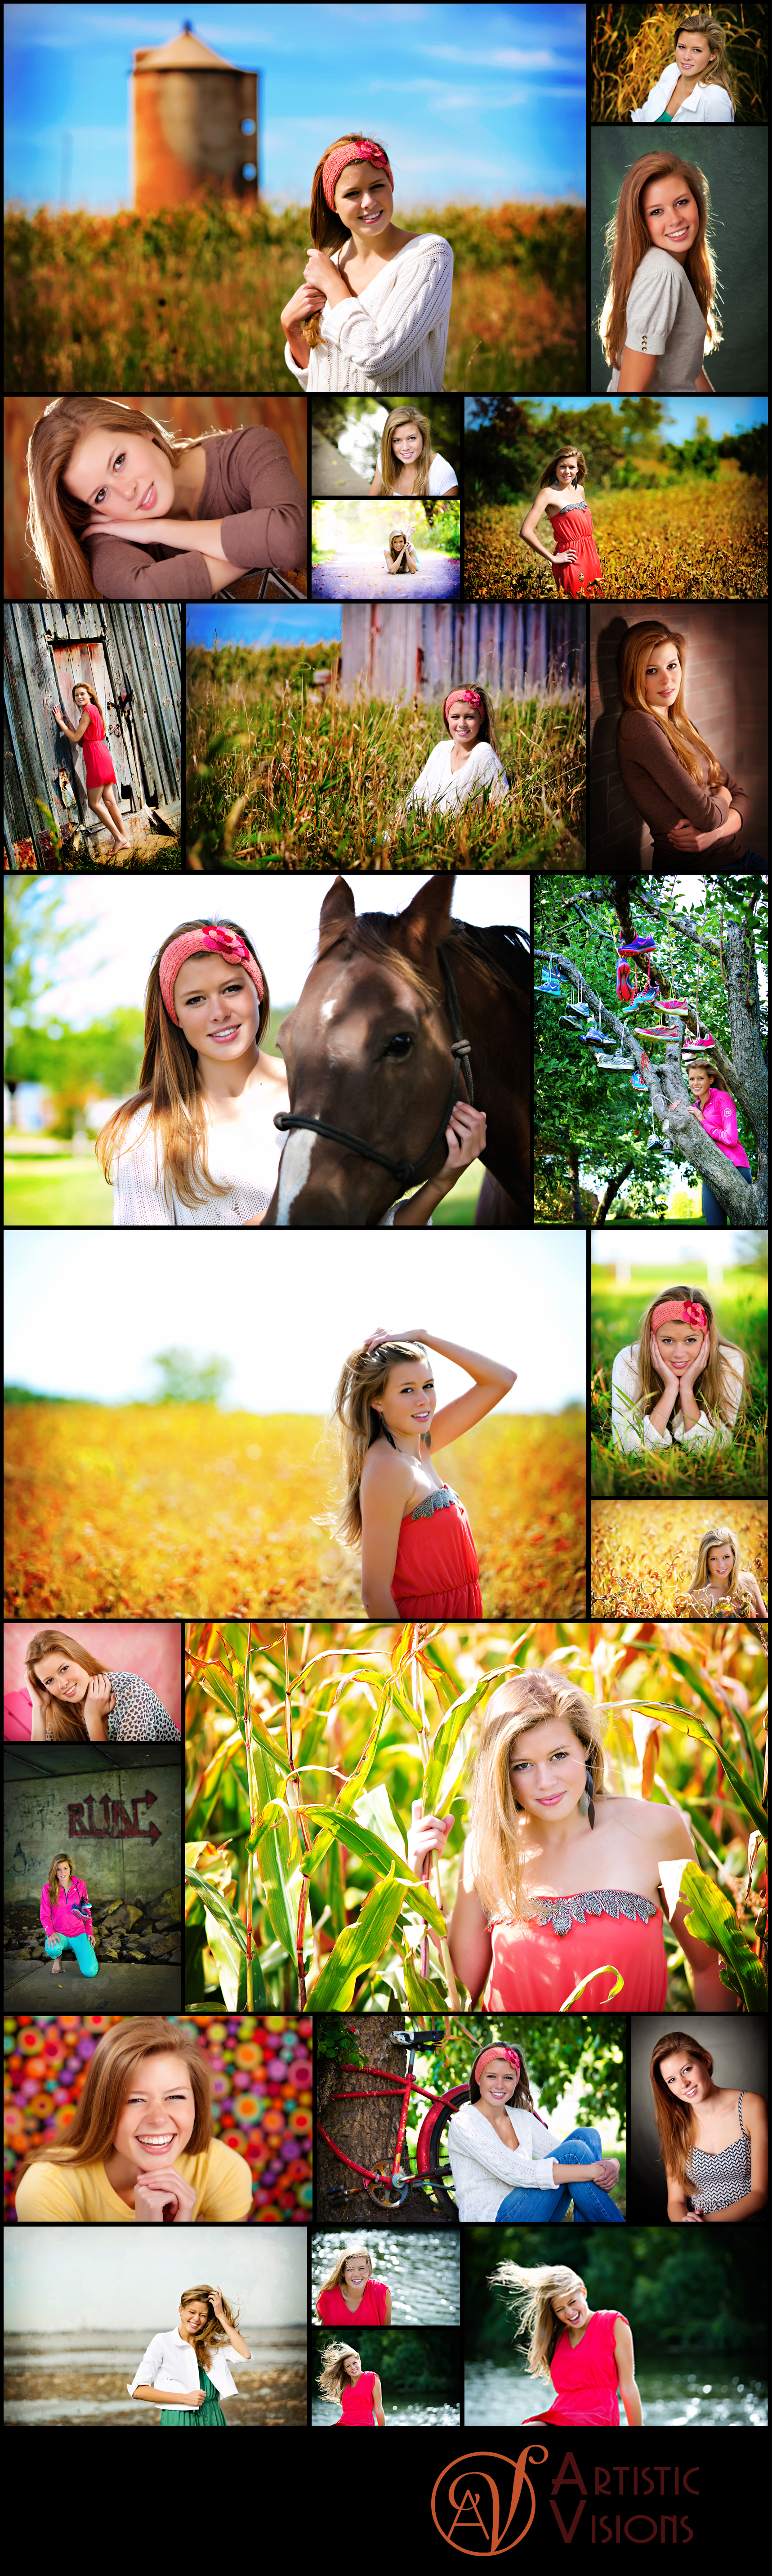 Abbie - Artistic Visions Green Bay Wisconsin Senior Portraits - Artistic Visions